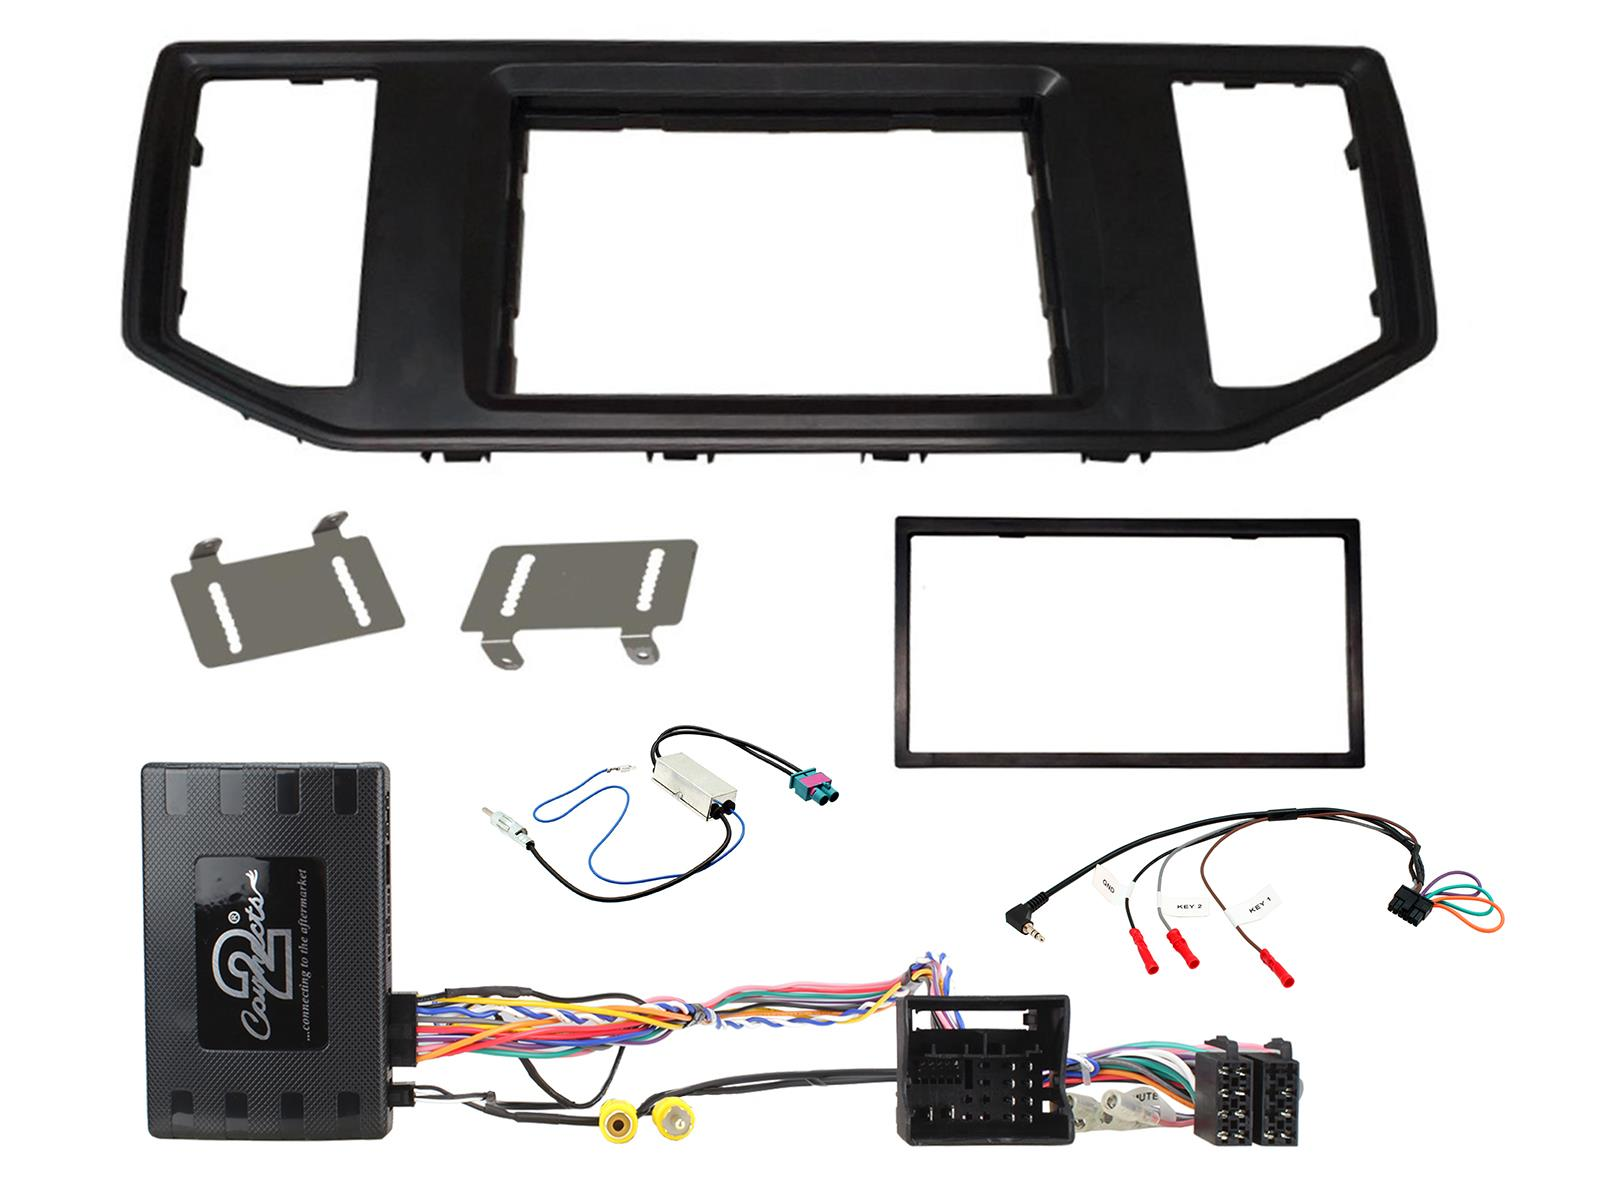 """2DIN KIT VW Crafter 2017- / Man TGE 2017 with OEM 8"""""""